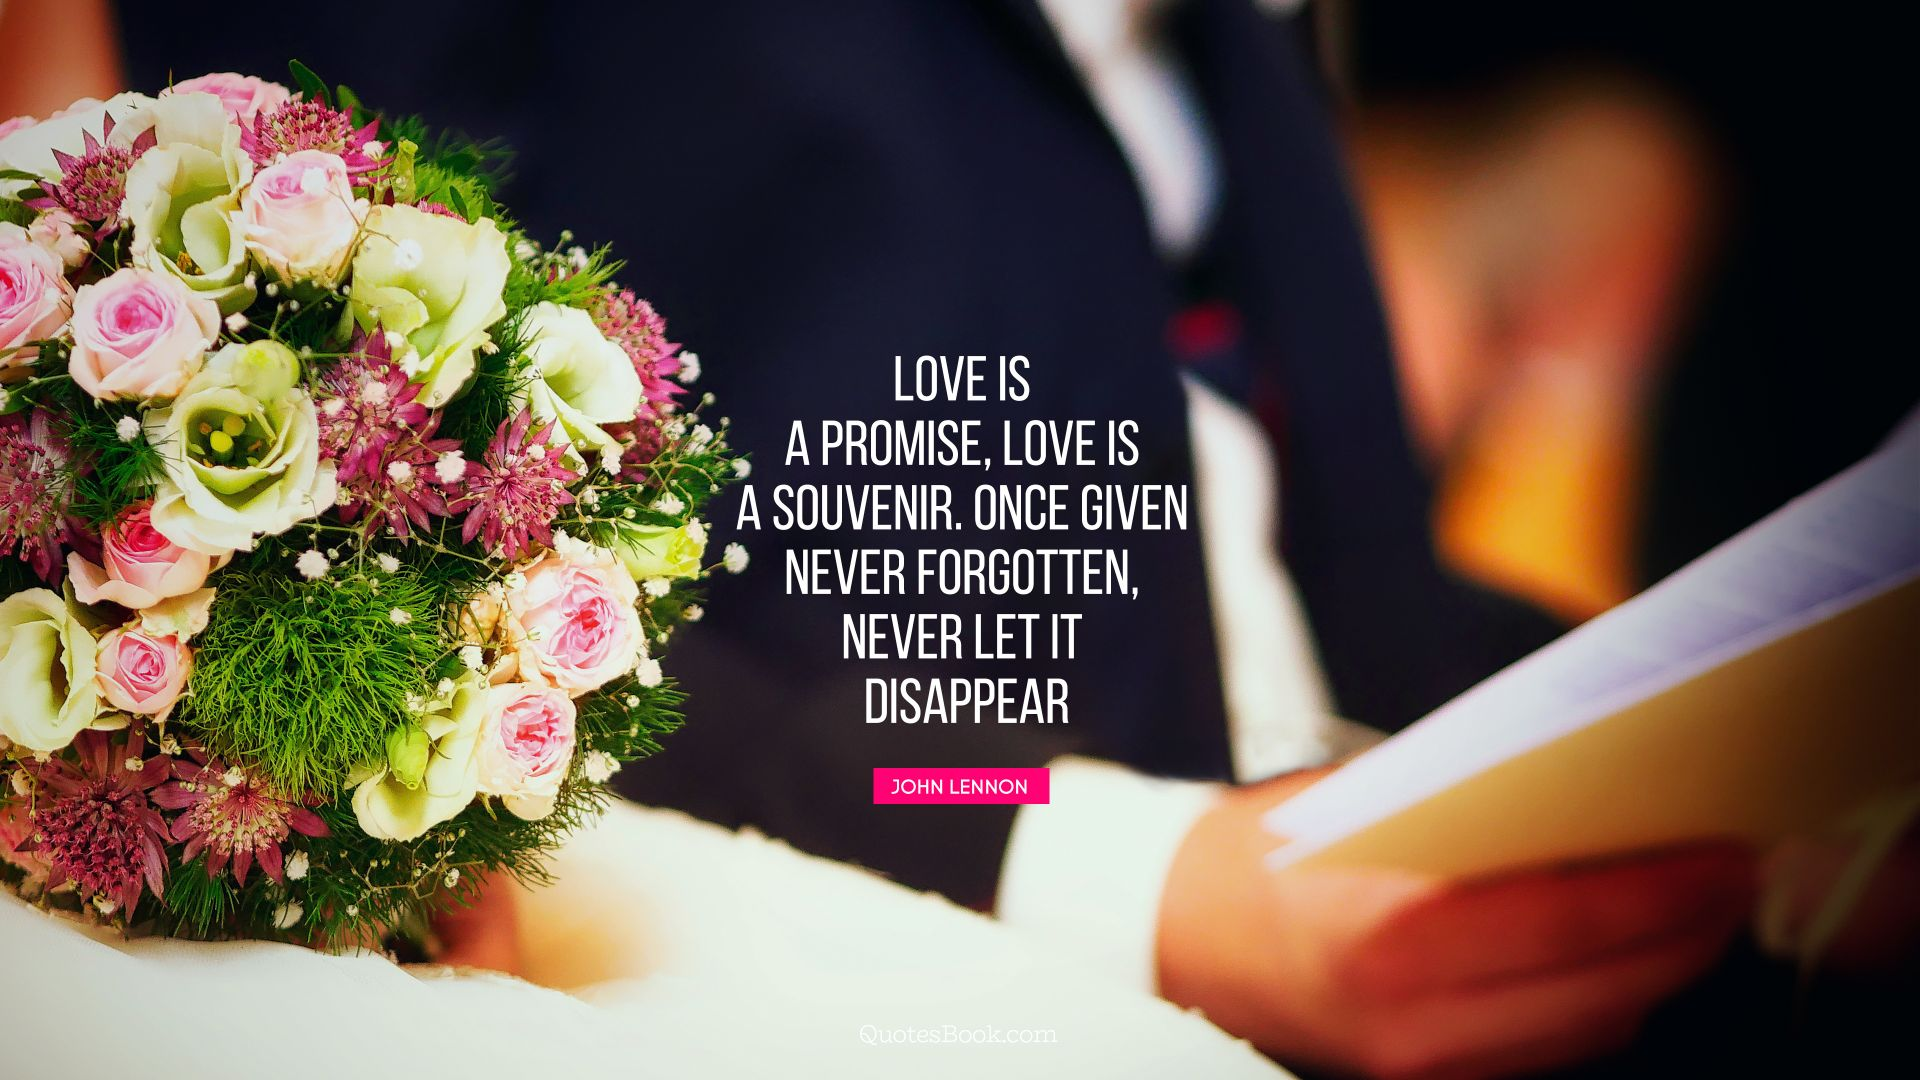 Love is a promise, love is a souvenir. Once given never forgotten, never let it disappear. - Quote by John Lennon